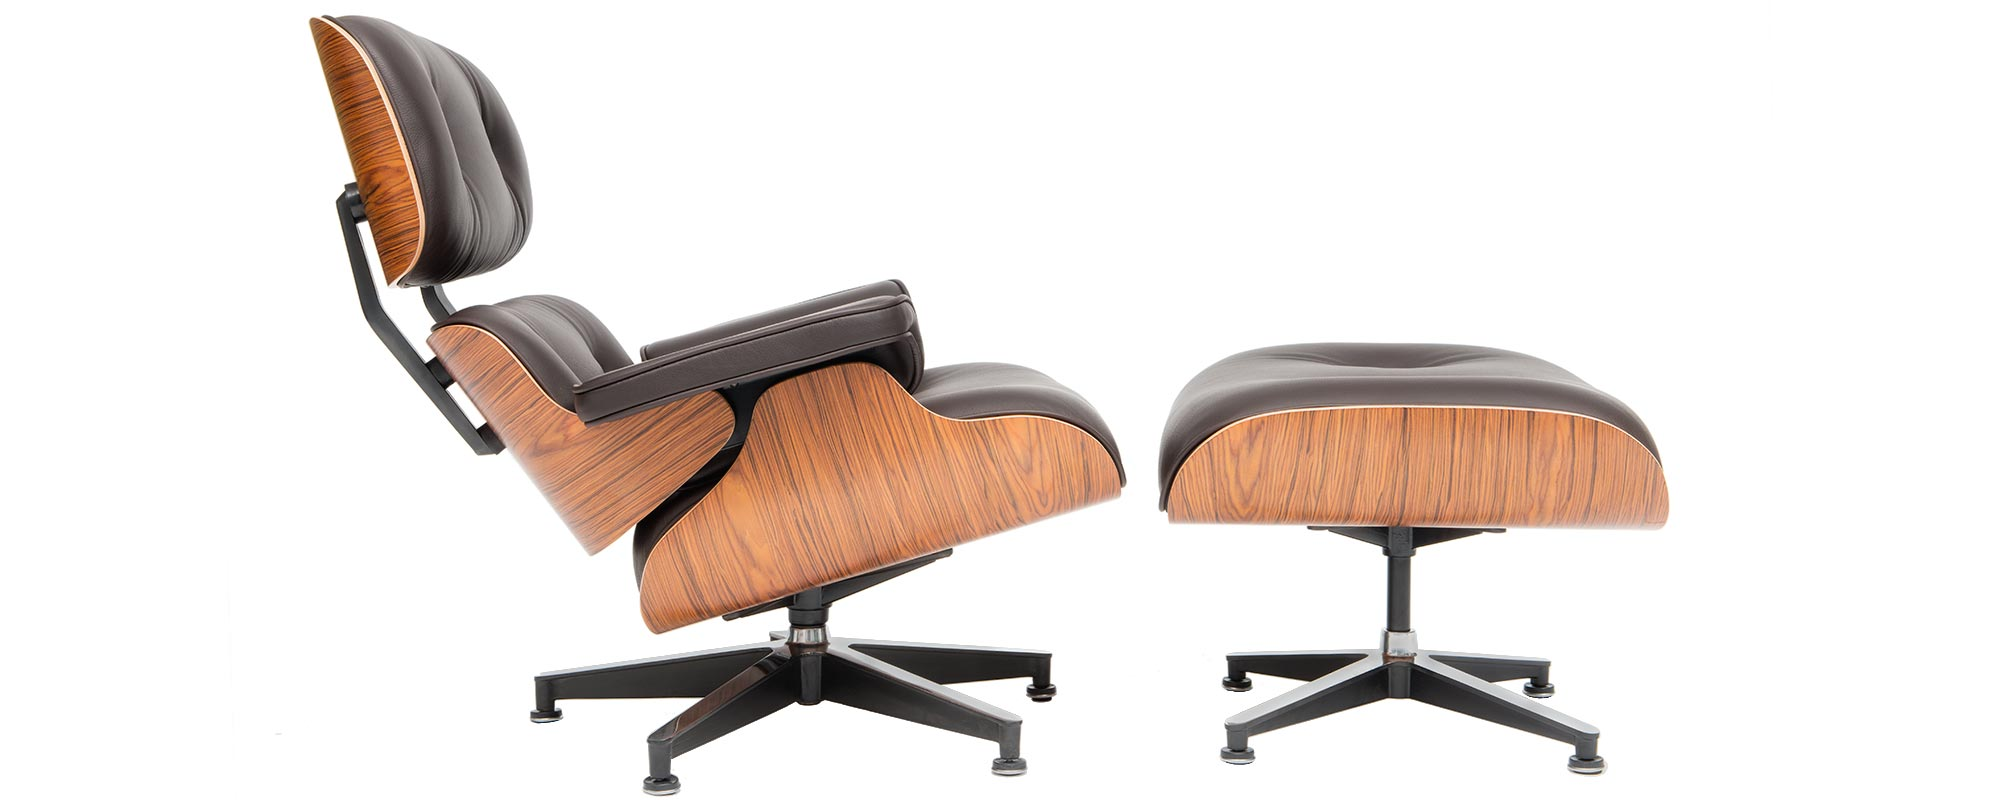 Charles Eames Lounge Chair Charles Eames Design Lounge Chair And Ottoman – Renown Classics